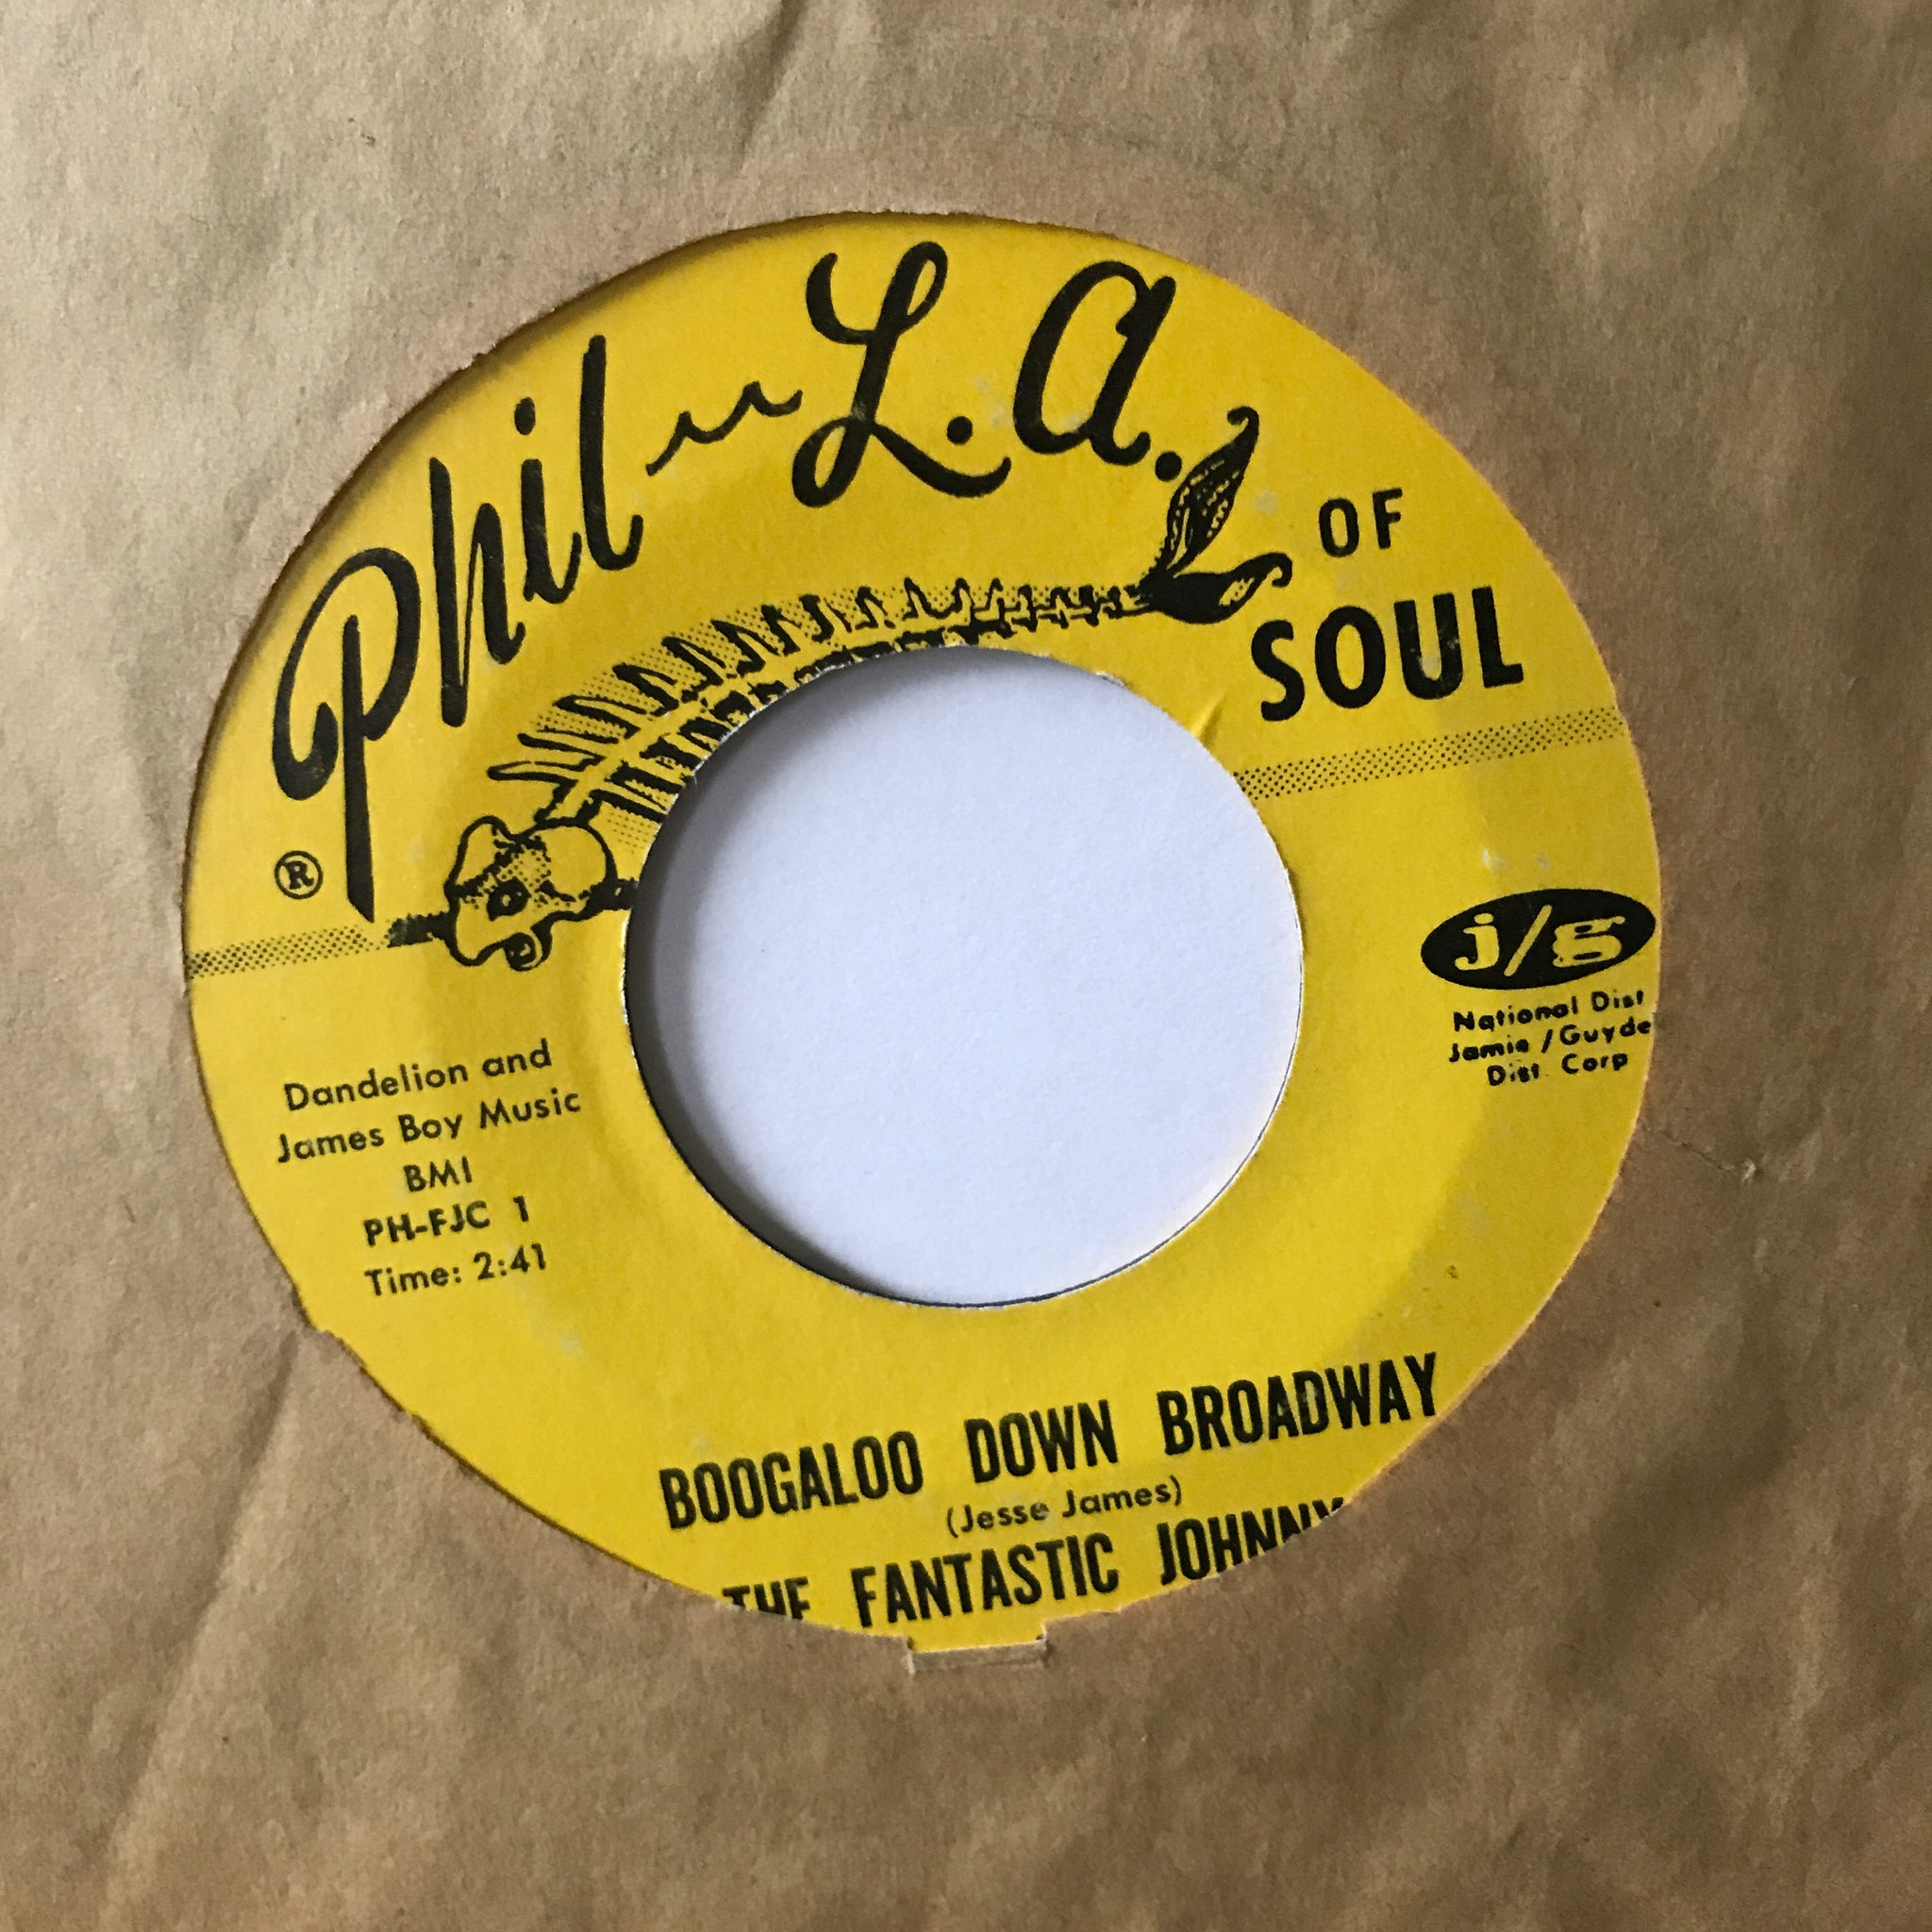 The Fantastic Johnny C ‎– Boogaloo Down Broadway / Look What Love Can Make You Do